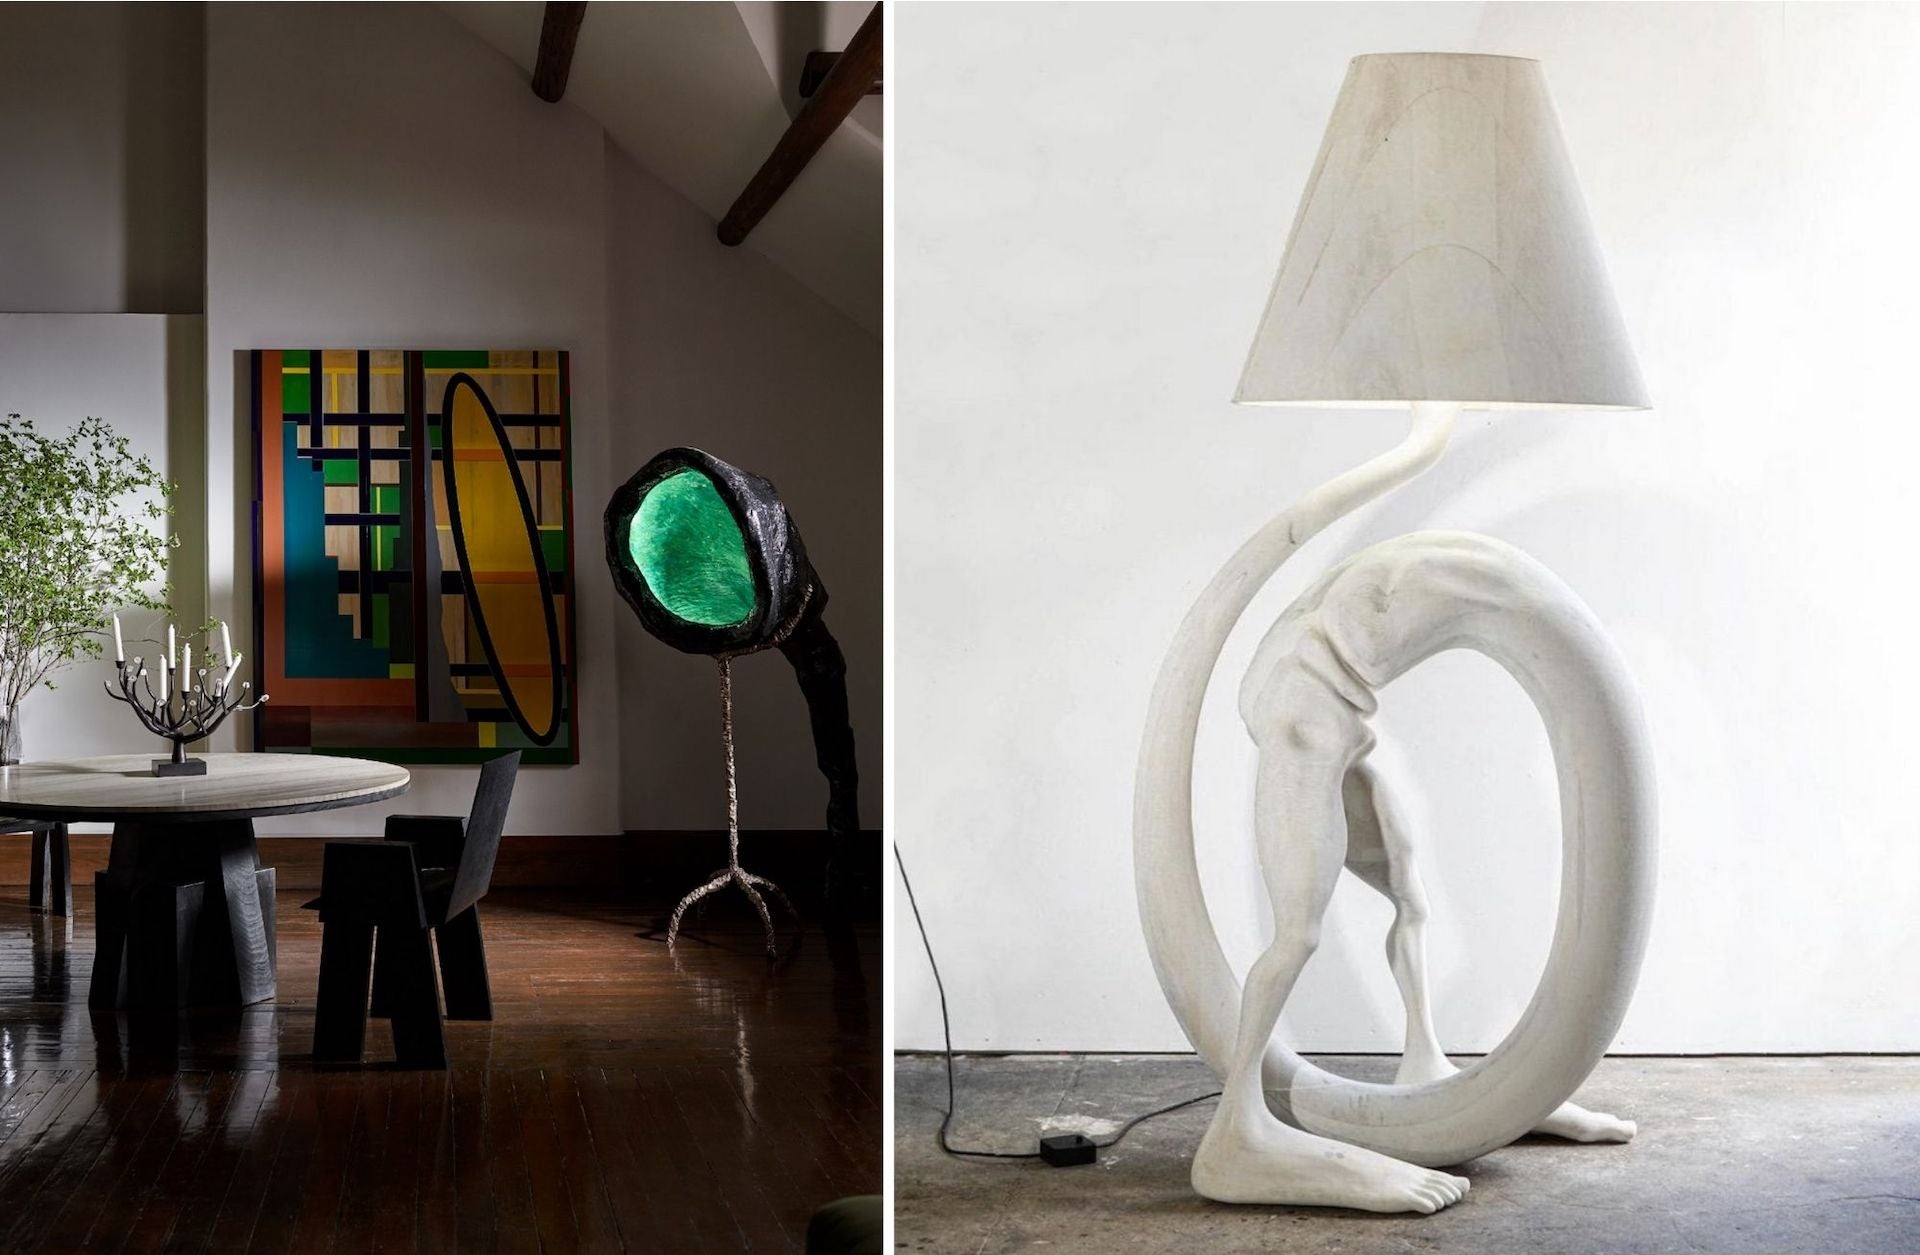 Left: Objective gallery in Shanghai. Right: Pipe Being Lamp by Vincent Pocsik, 2020. Photos © Objective